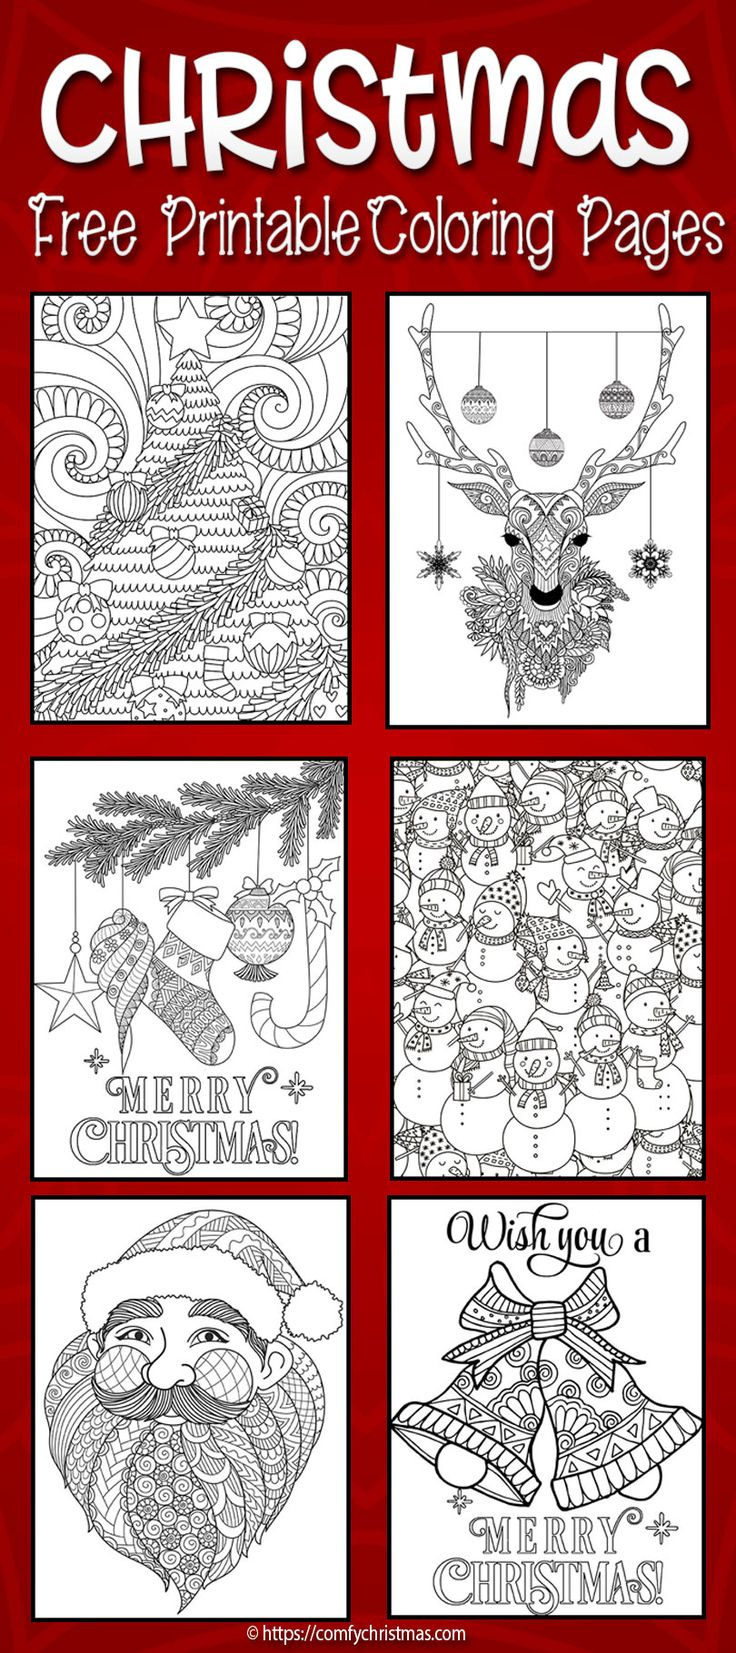 107 best Coloring Pages images on Pinterest | Coloring pages ...